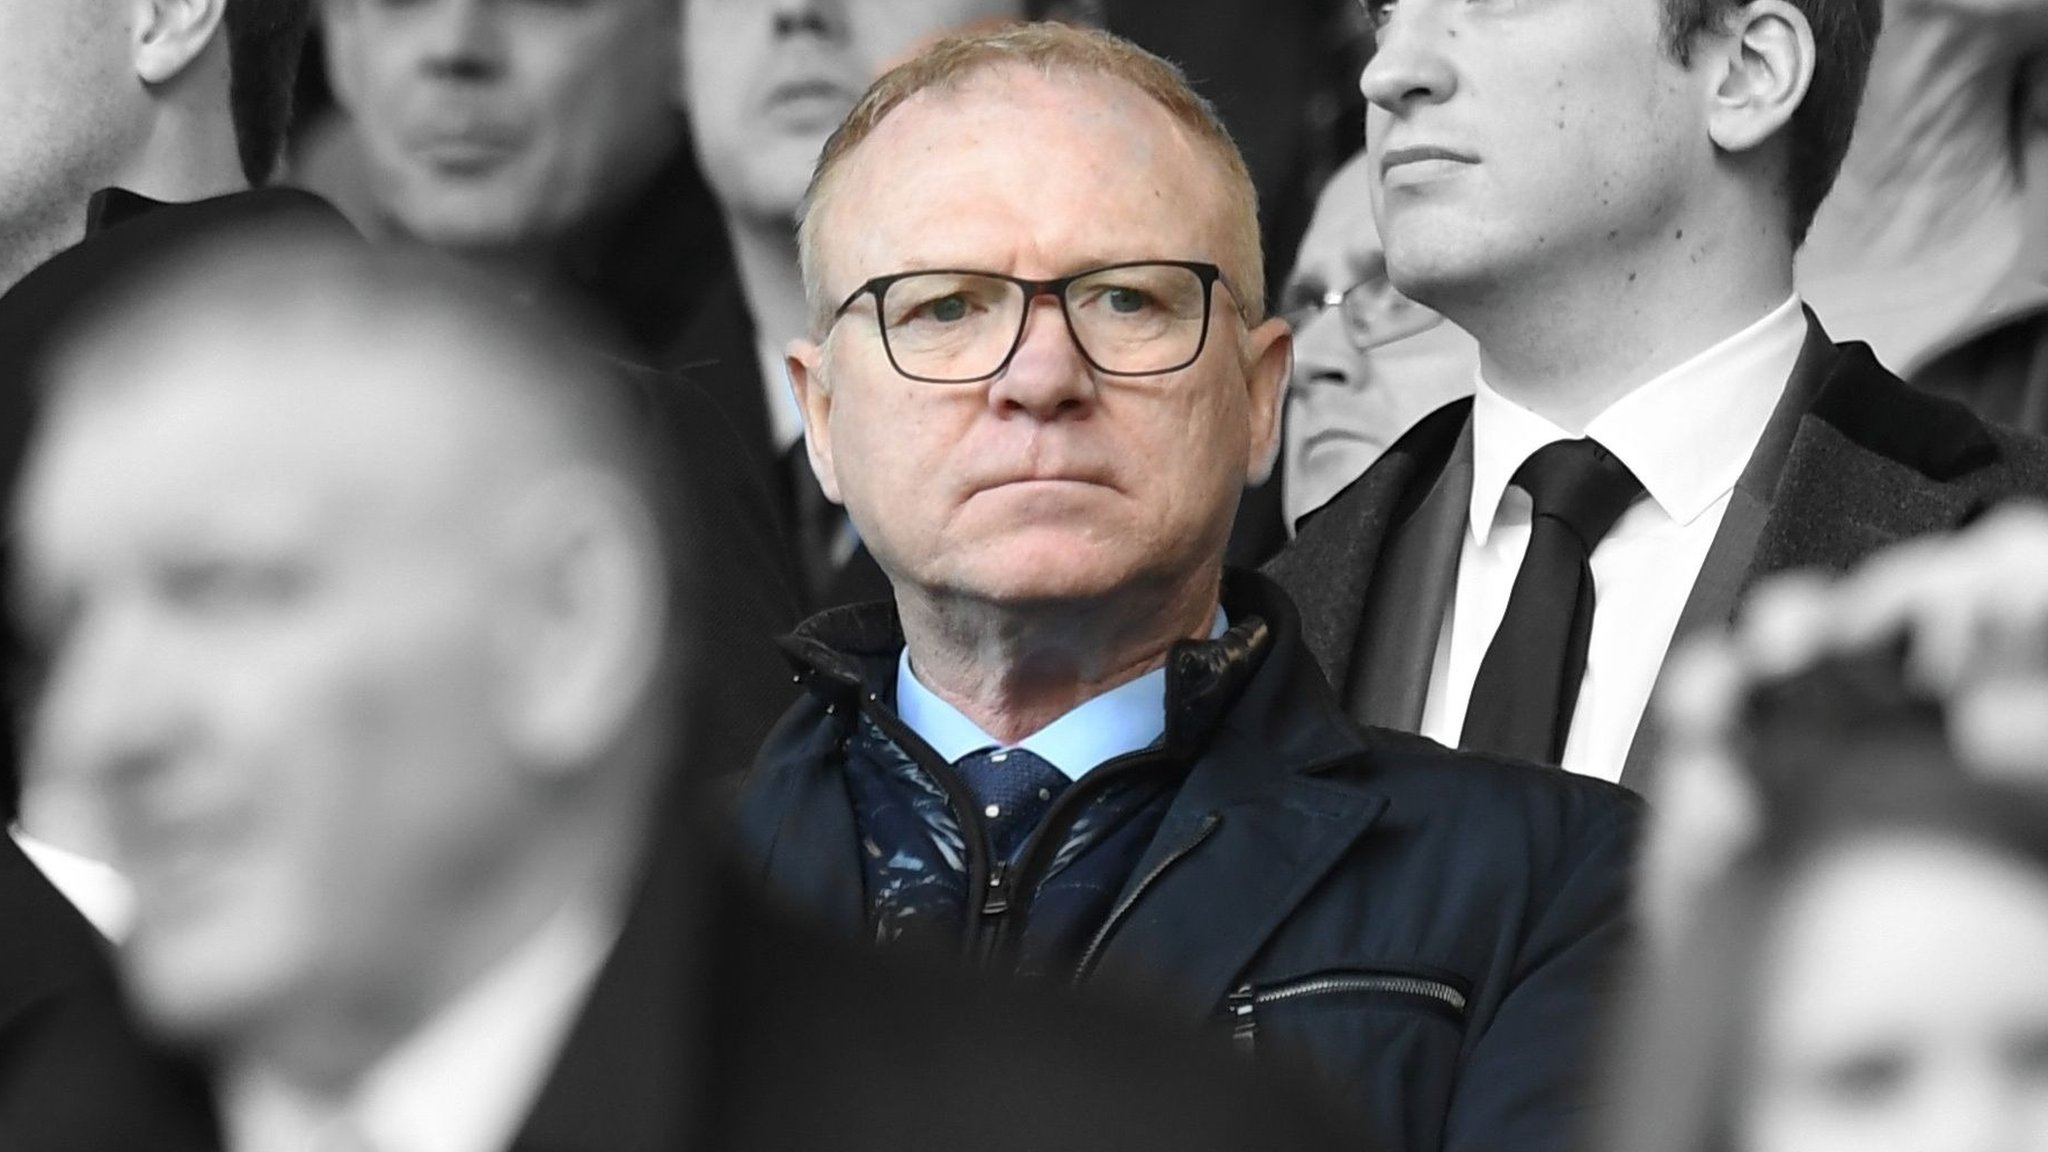 Scotland: Alex McLeish exits as head coach after poor start to Euro 2020 qualifying